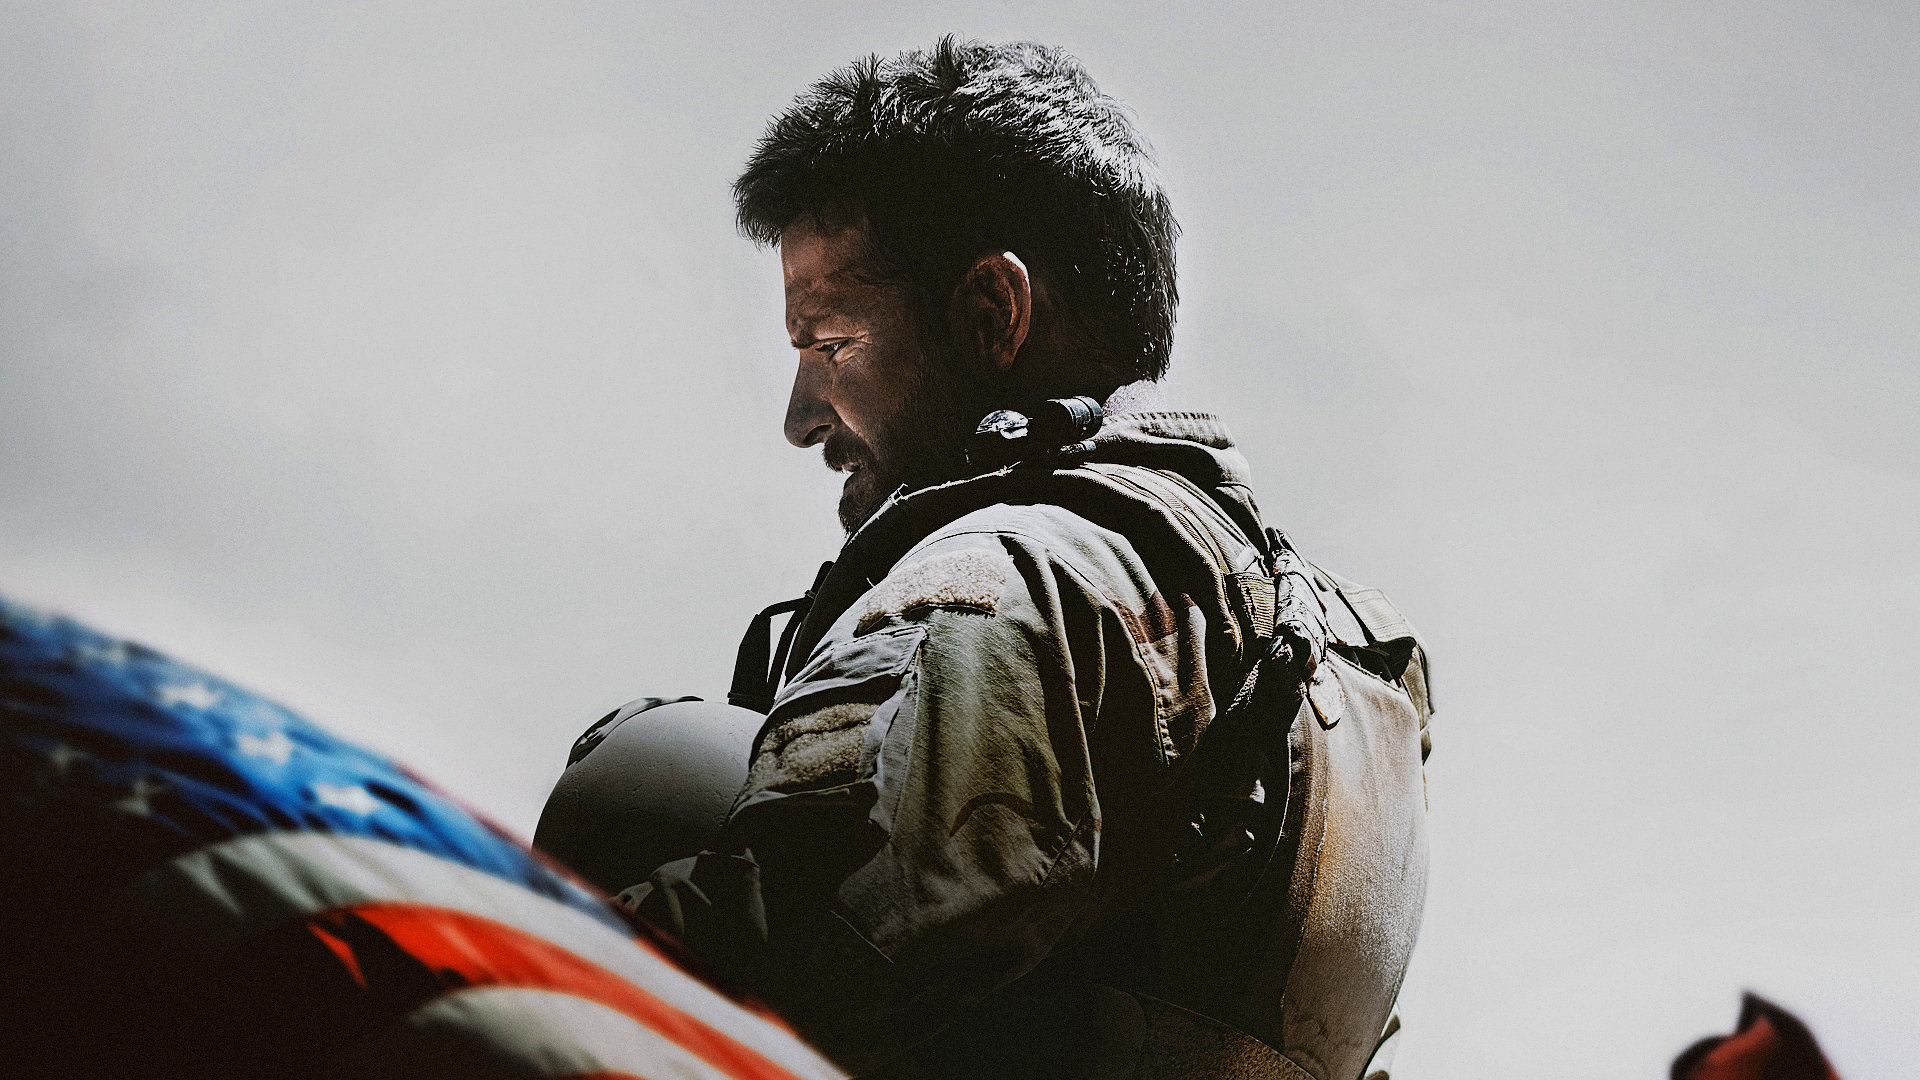 American Sniper Wallpapers Hd For Desktop Backgrounds